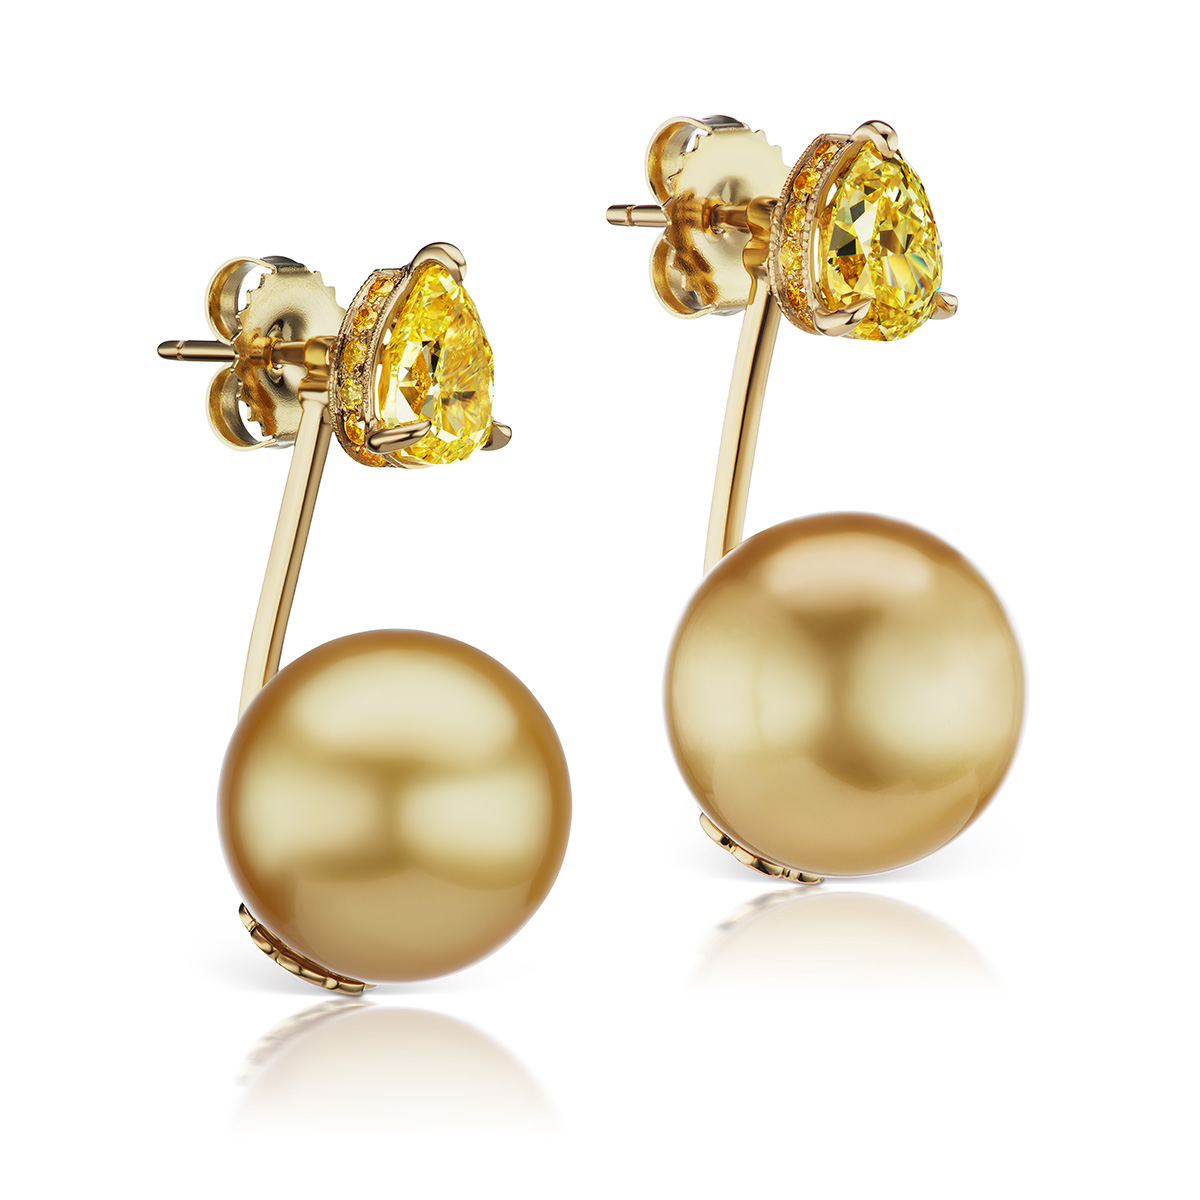 Floating Orb Earrings by Alexia Connellan